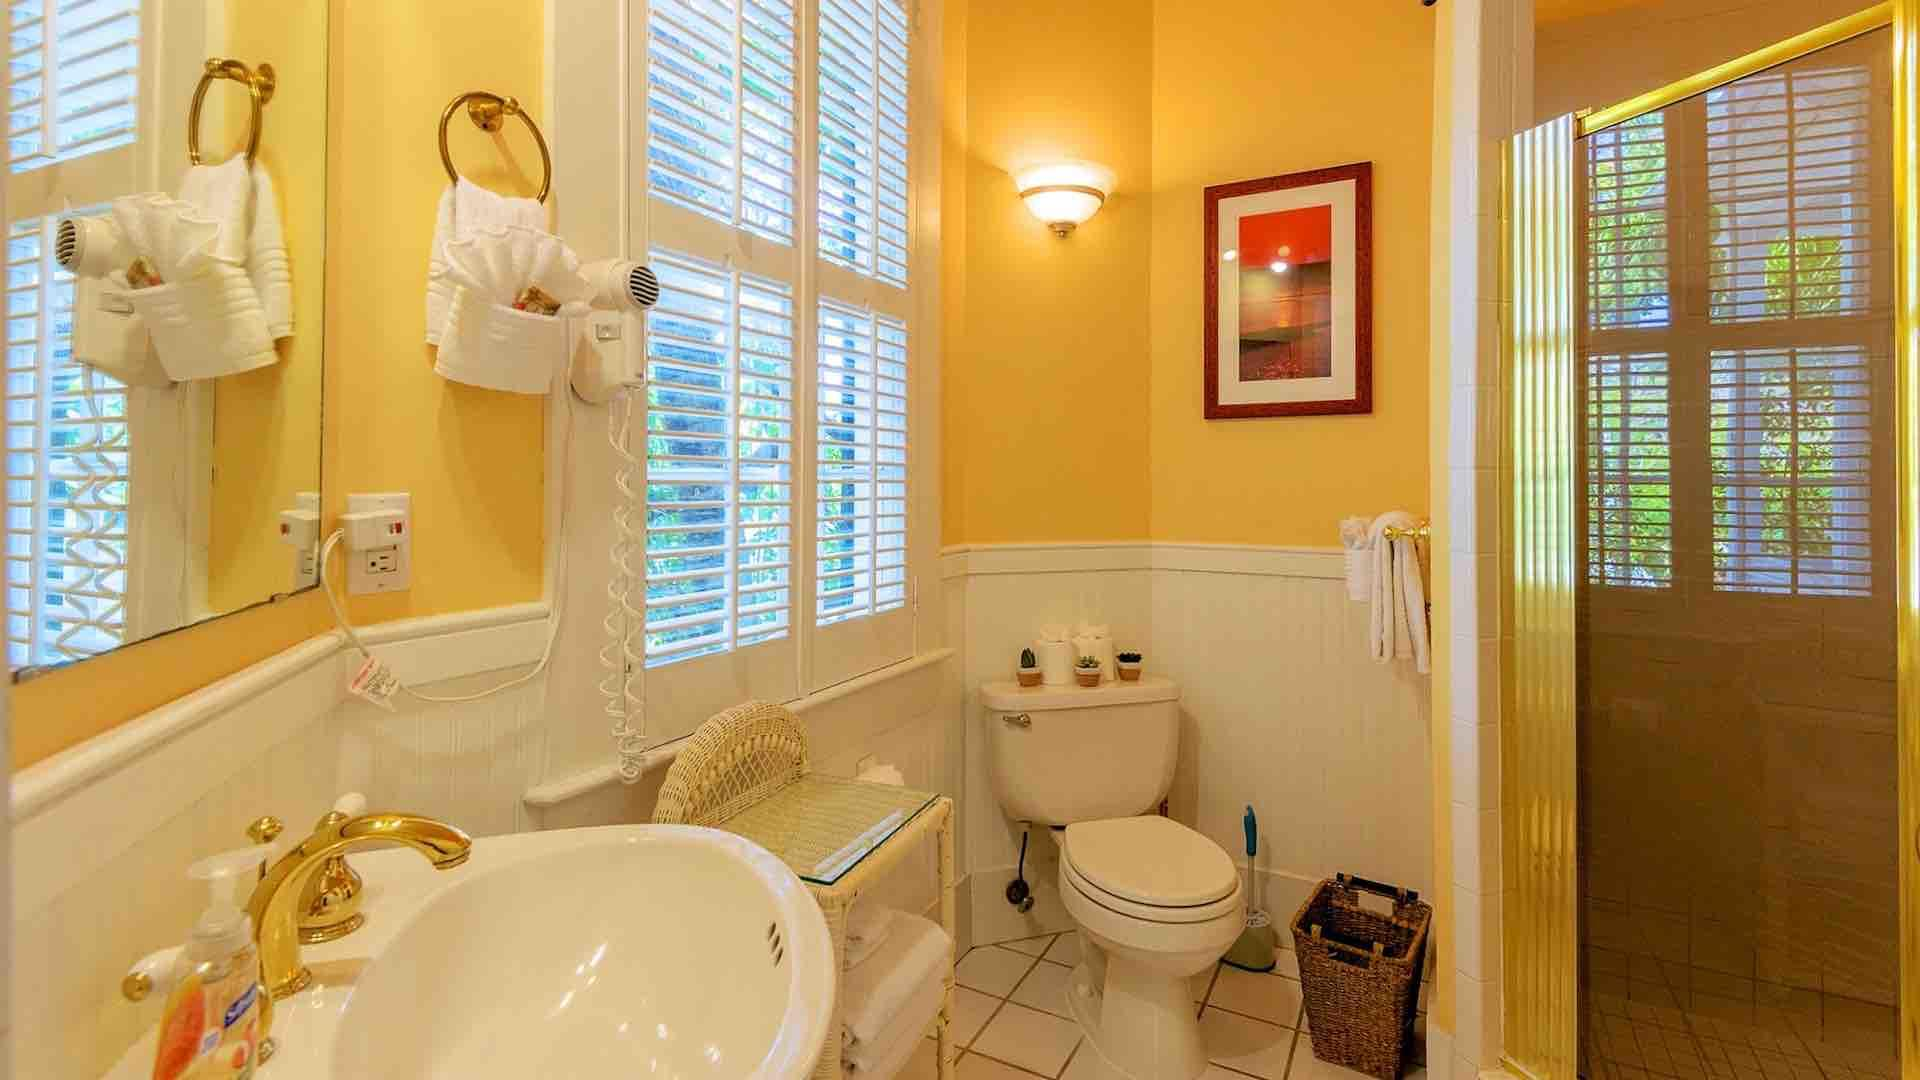 The first master bedroom has its own en suite bathroom with a shower.